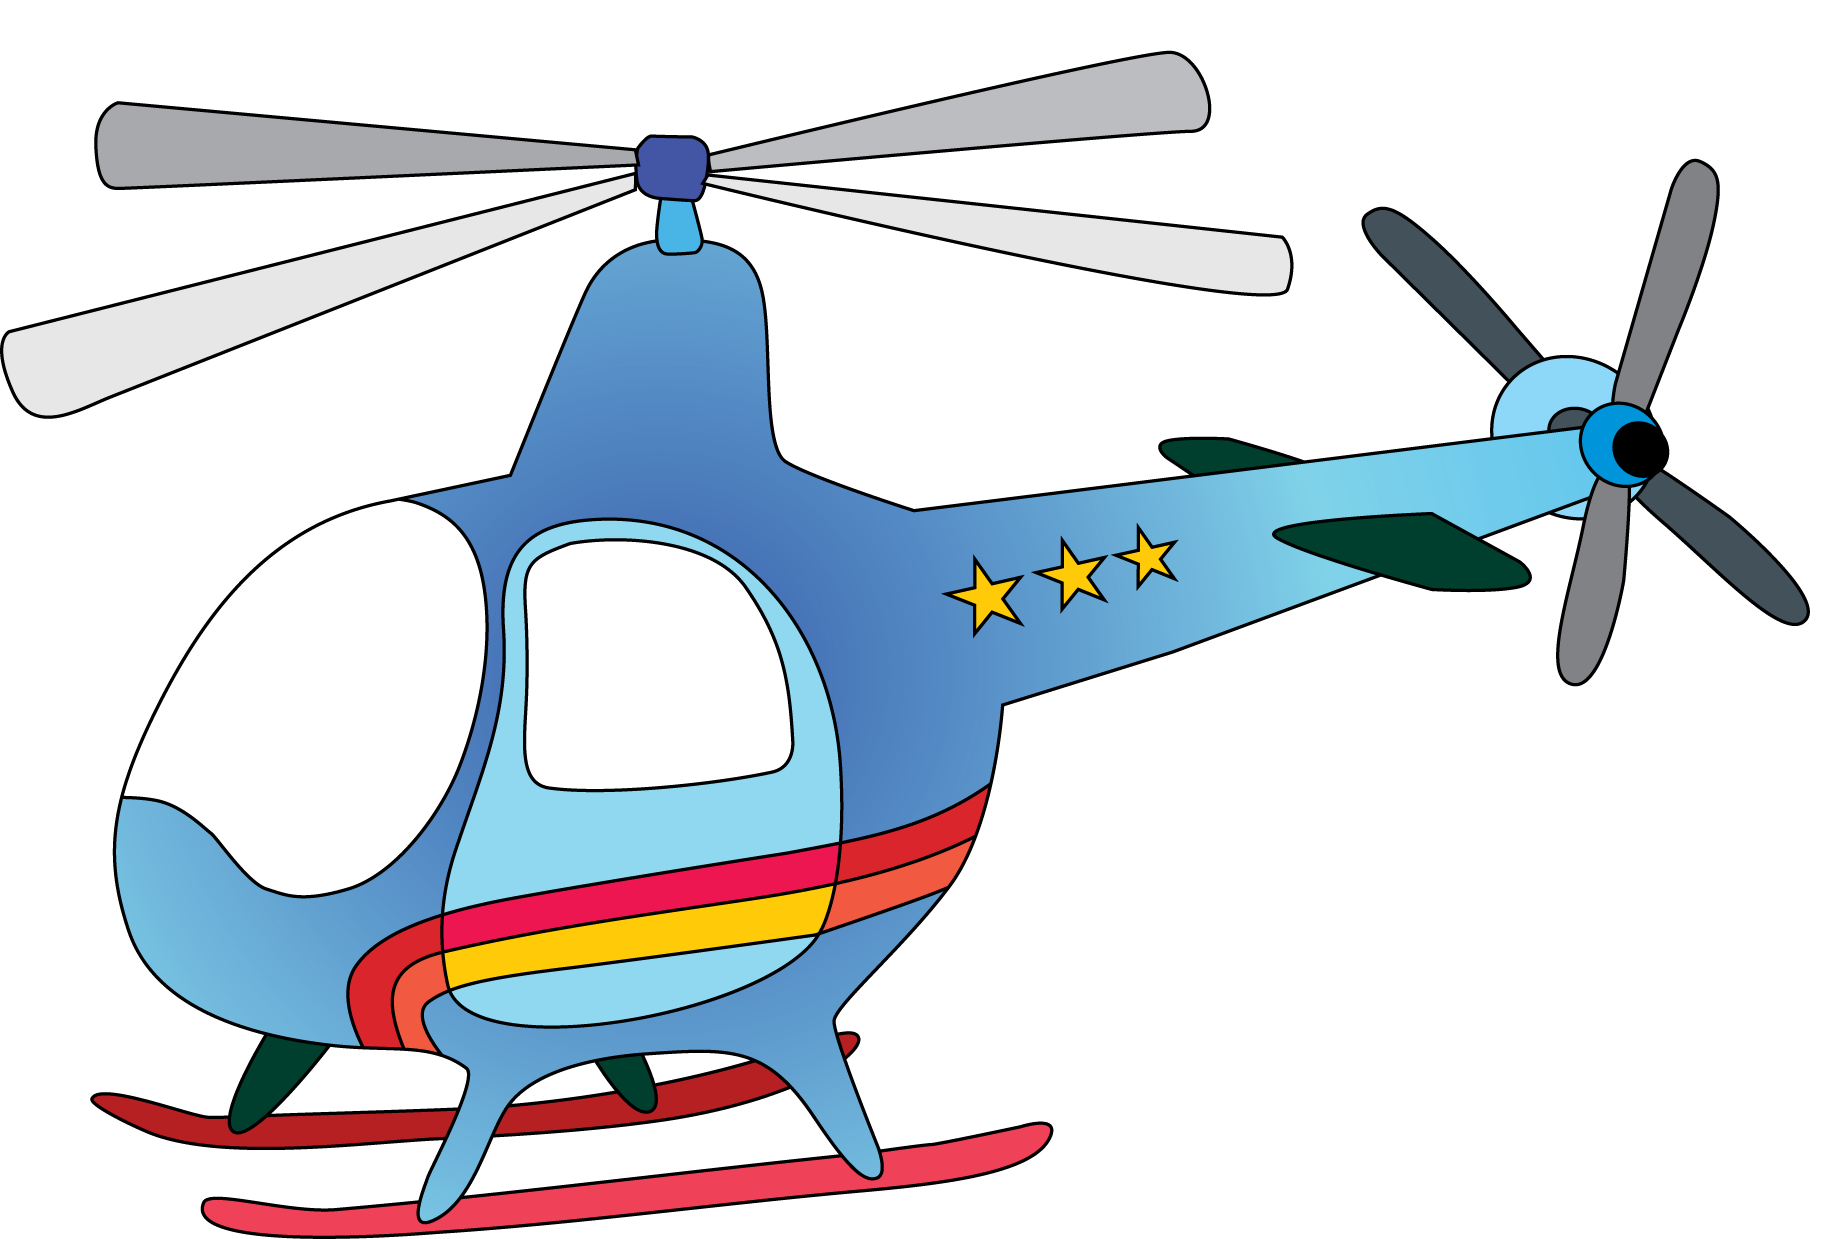 hight resolution of cute airplane clip art have about files nov cachedhelicopter clipart images graphics browse